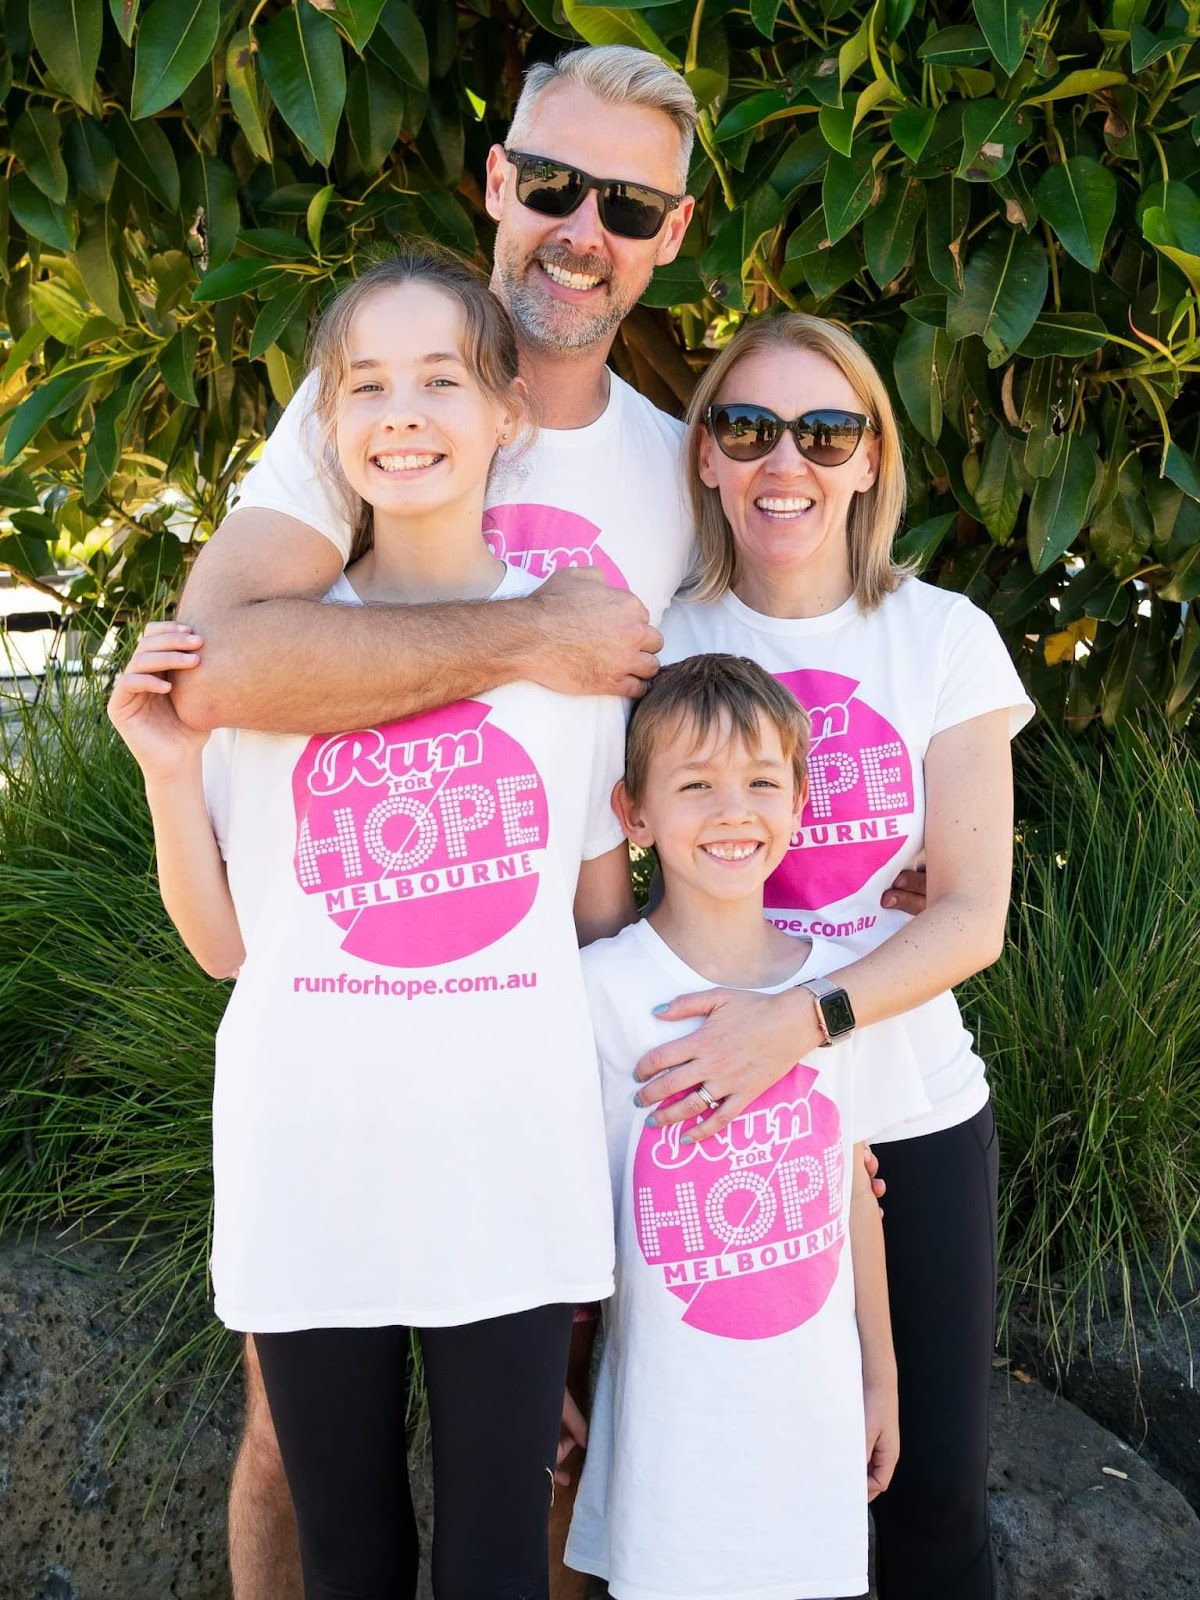 Sarah Powell and her family